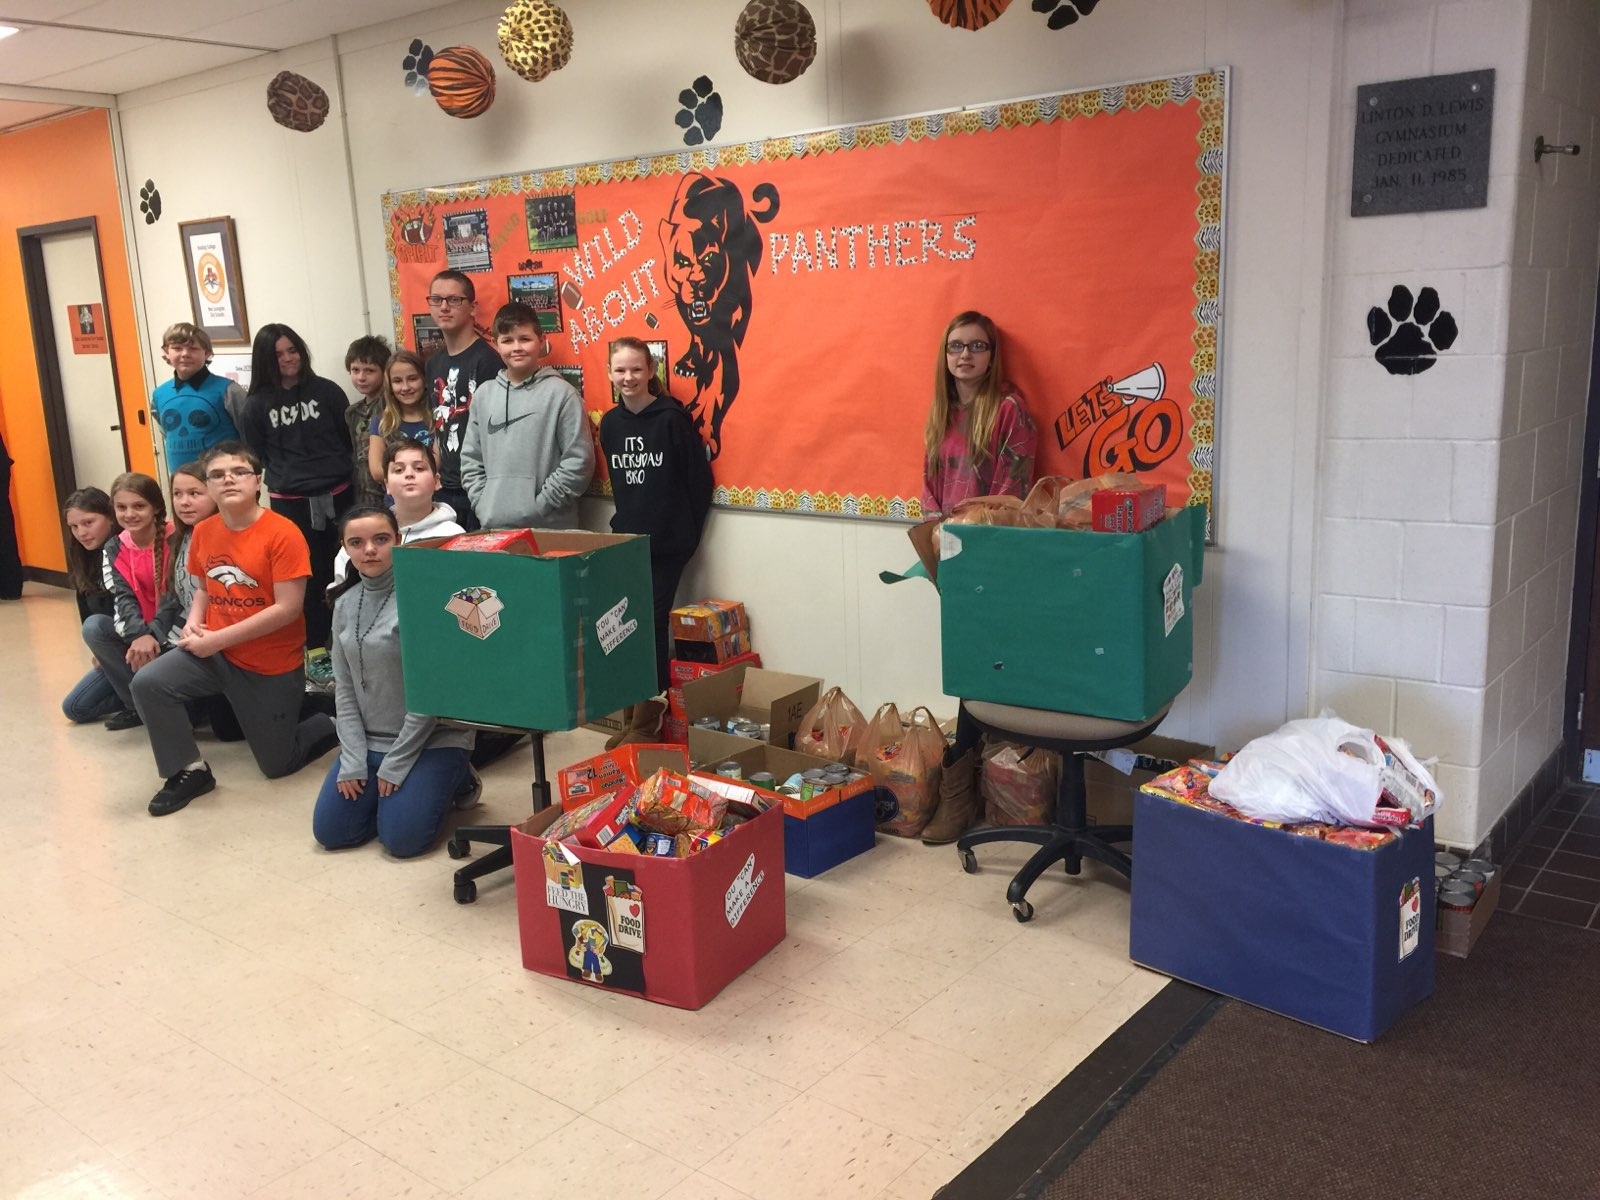 December's Student Council Food Drive. Our goal was 500 items and we collected over 1300 items!